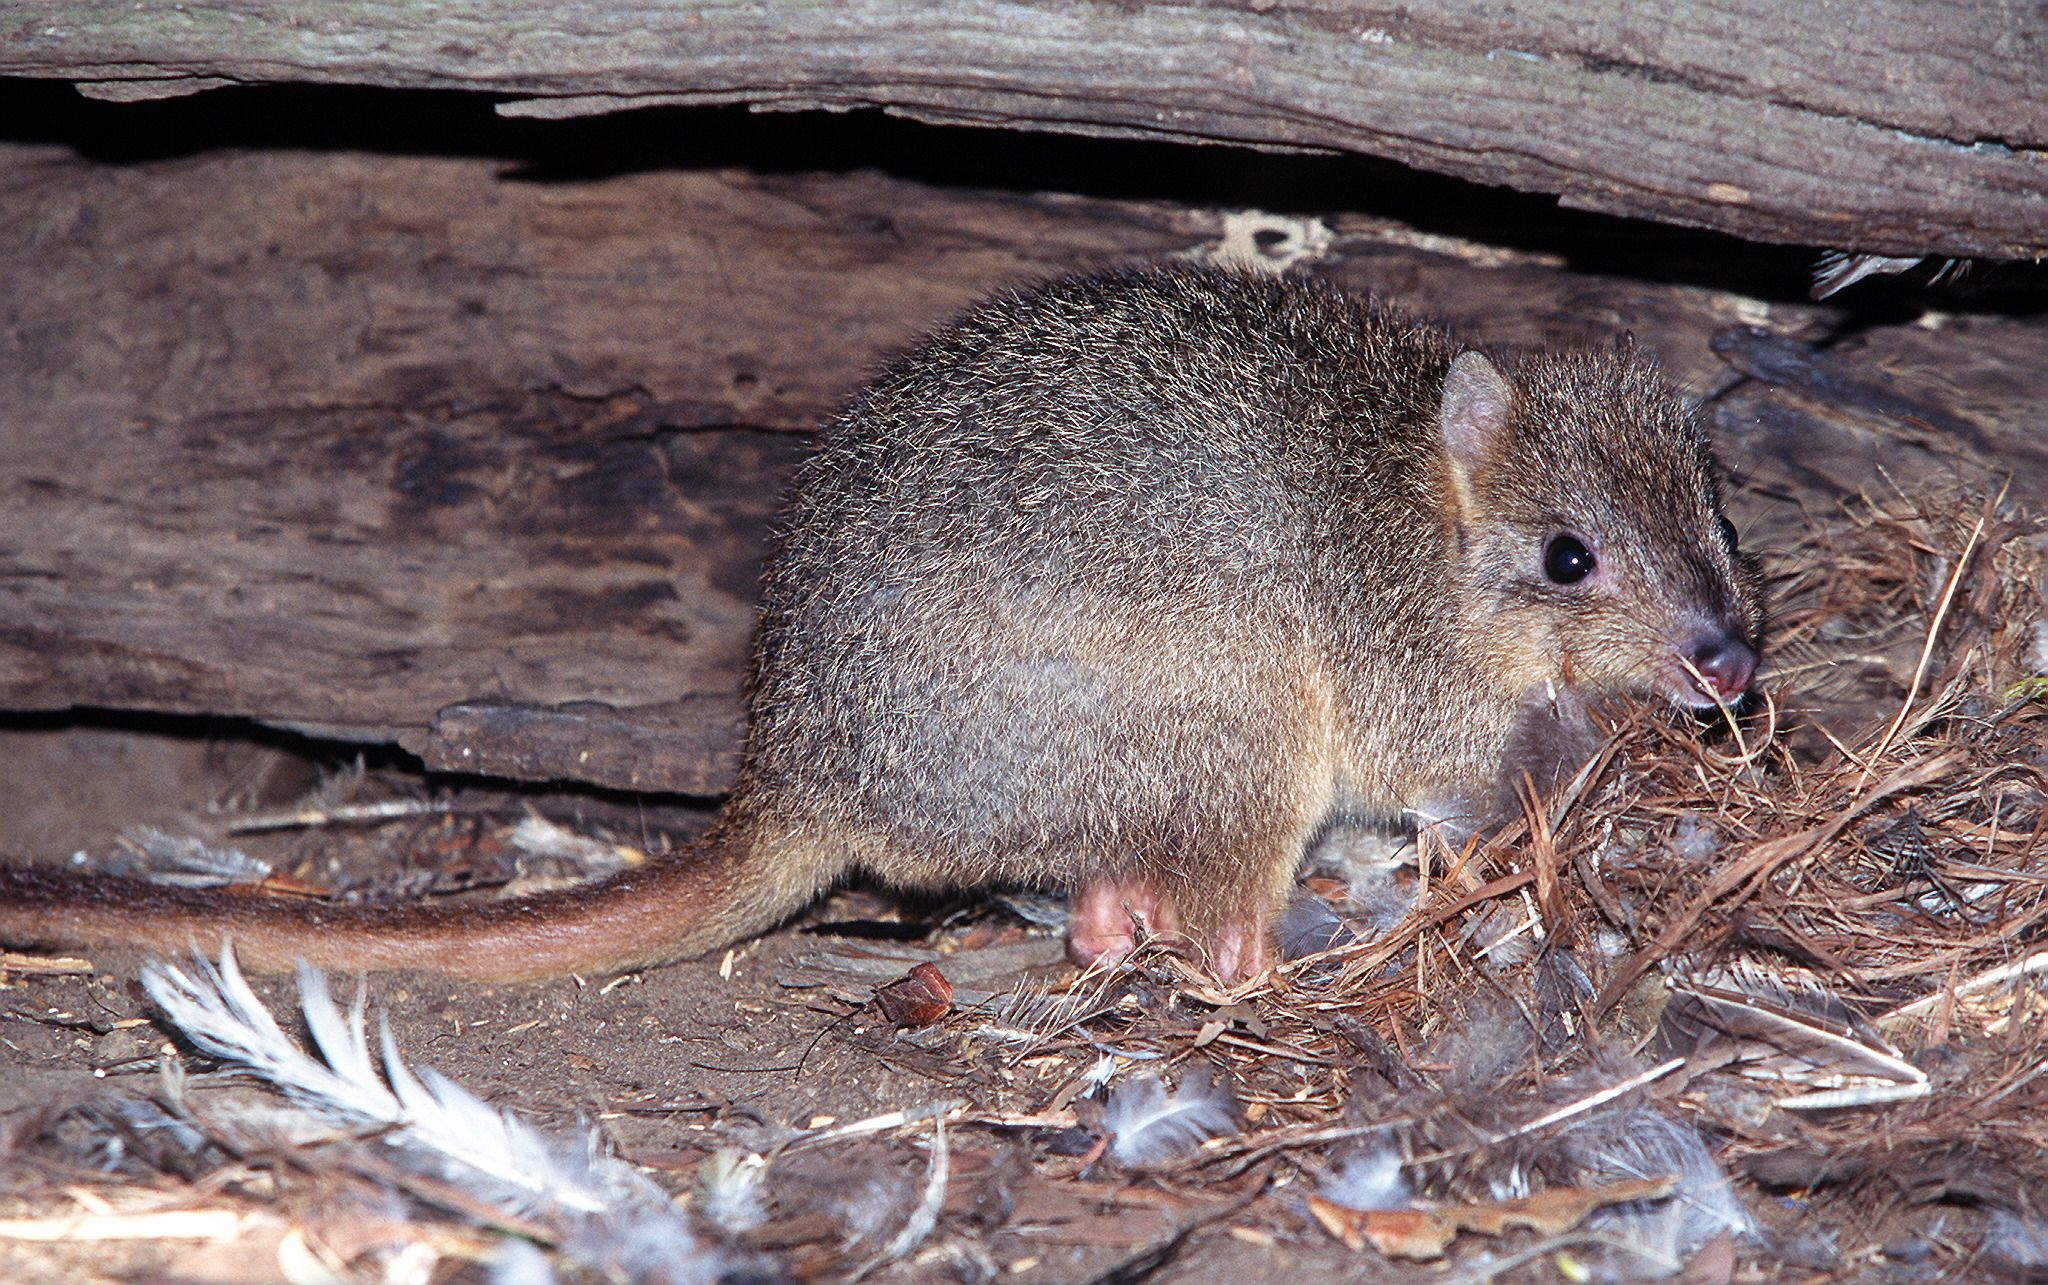 Burrowing_Bettong